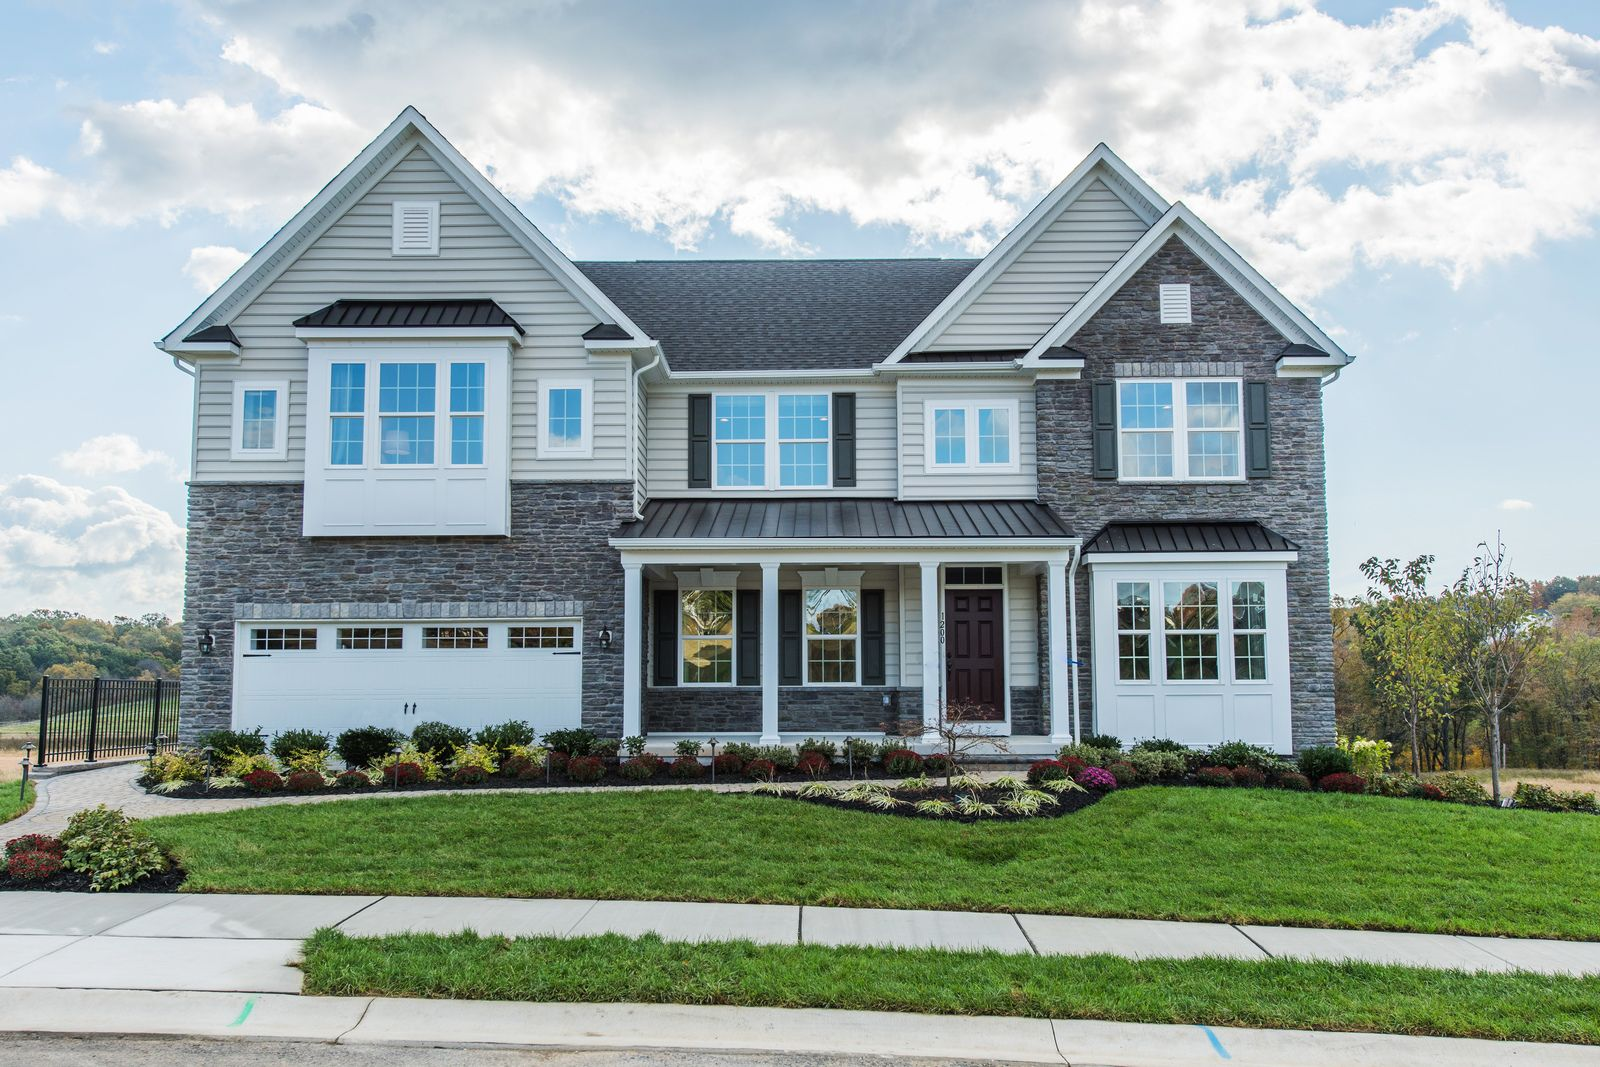 Welcome to Tuscan Hills!:The only new homes in North Huntingdon & top ranked Norwin School District with convenience to Rt. 30 & the Turnpike - From the mid $300s.Click heretosign up for the VIP list.